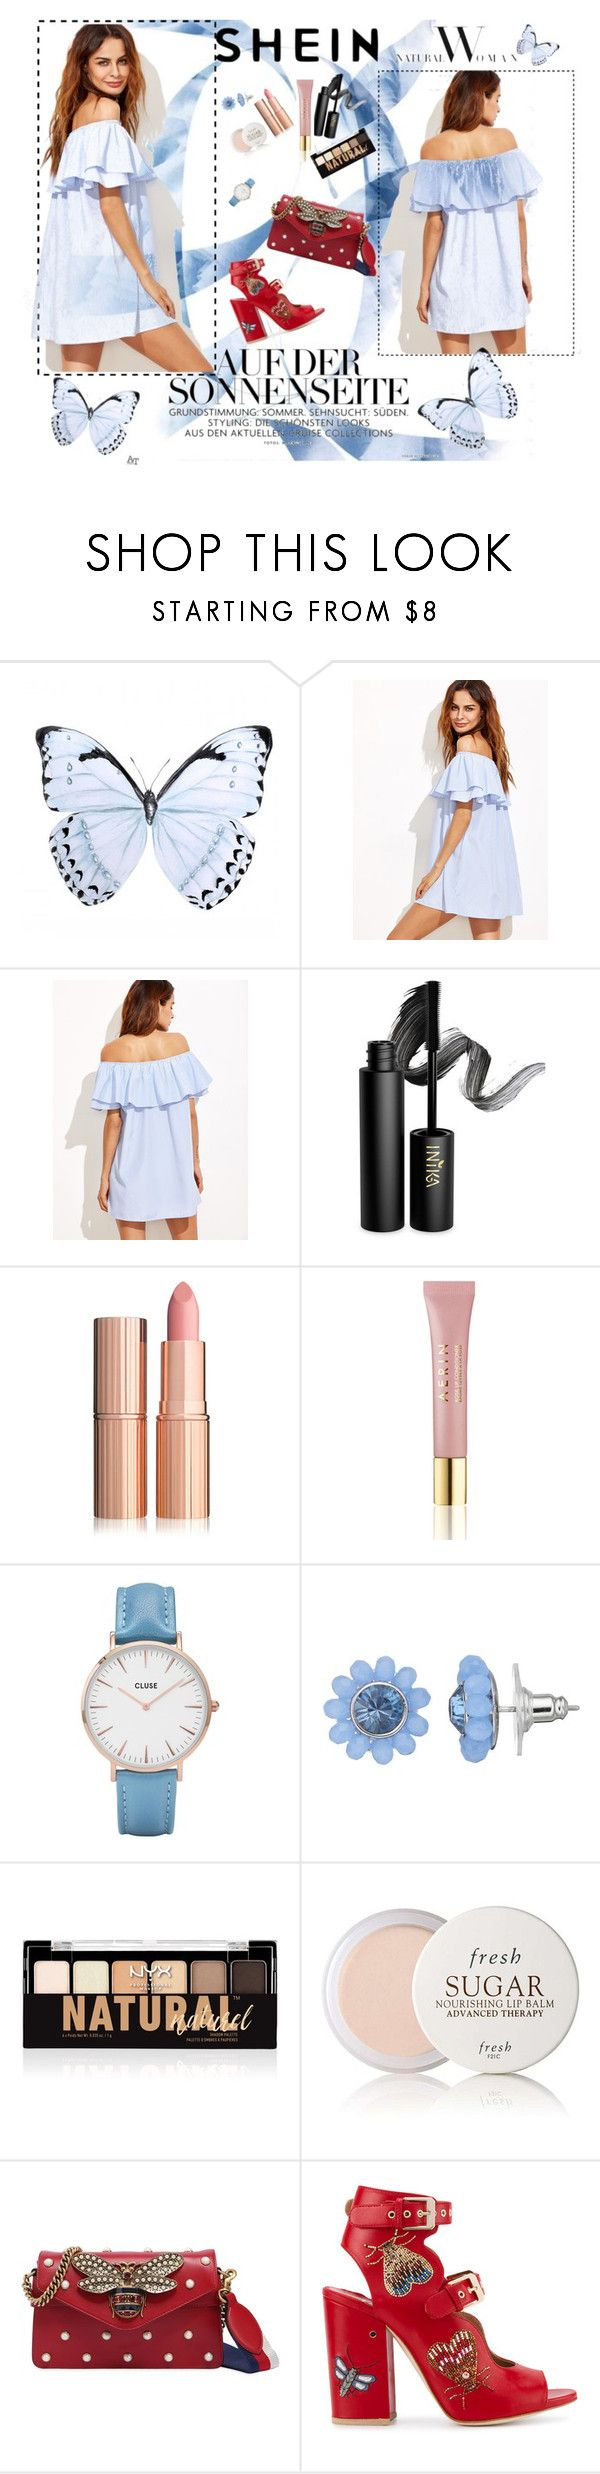 """#shein dress"" by nejraa95 ❤ liked on Polyvore featuring INIKA, AERIN, CLUSE, Simply Vera, NYX, Fresh, Gucci and Laurence Dacade"